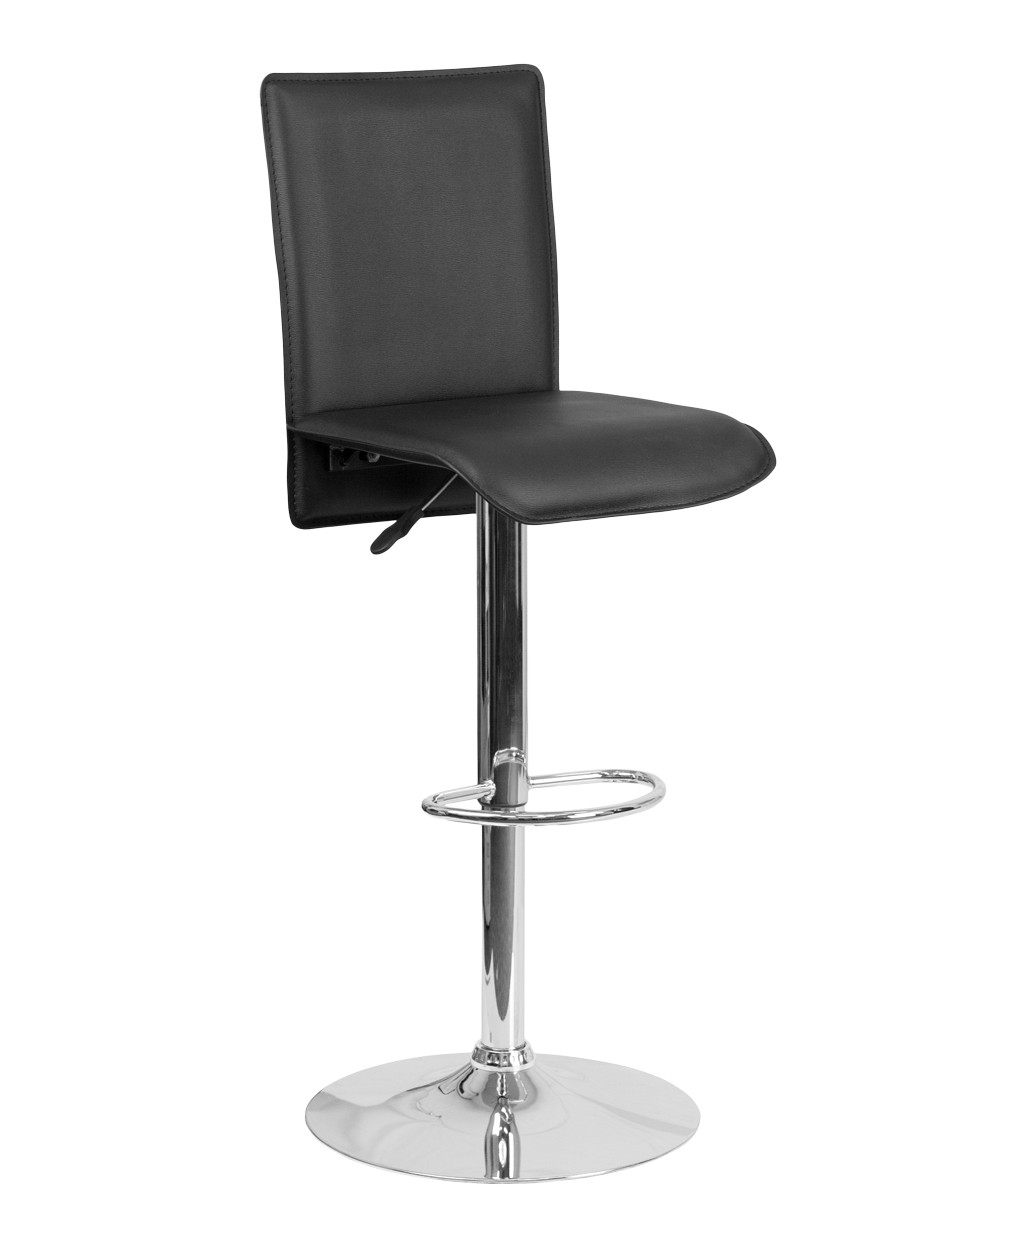 Fine Contemporary Tall Vinyl Adjustable Height Barstool With Chrome Base Pabps2019 Chair Design Images Pabps2019Com